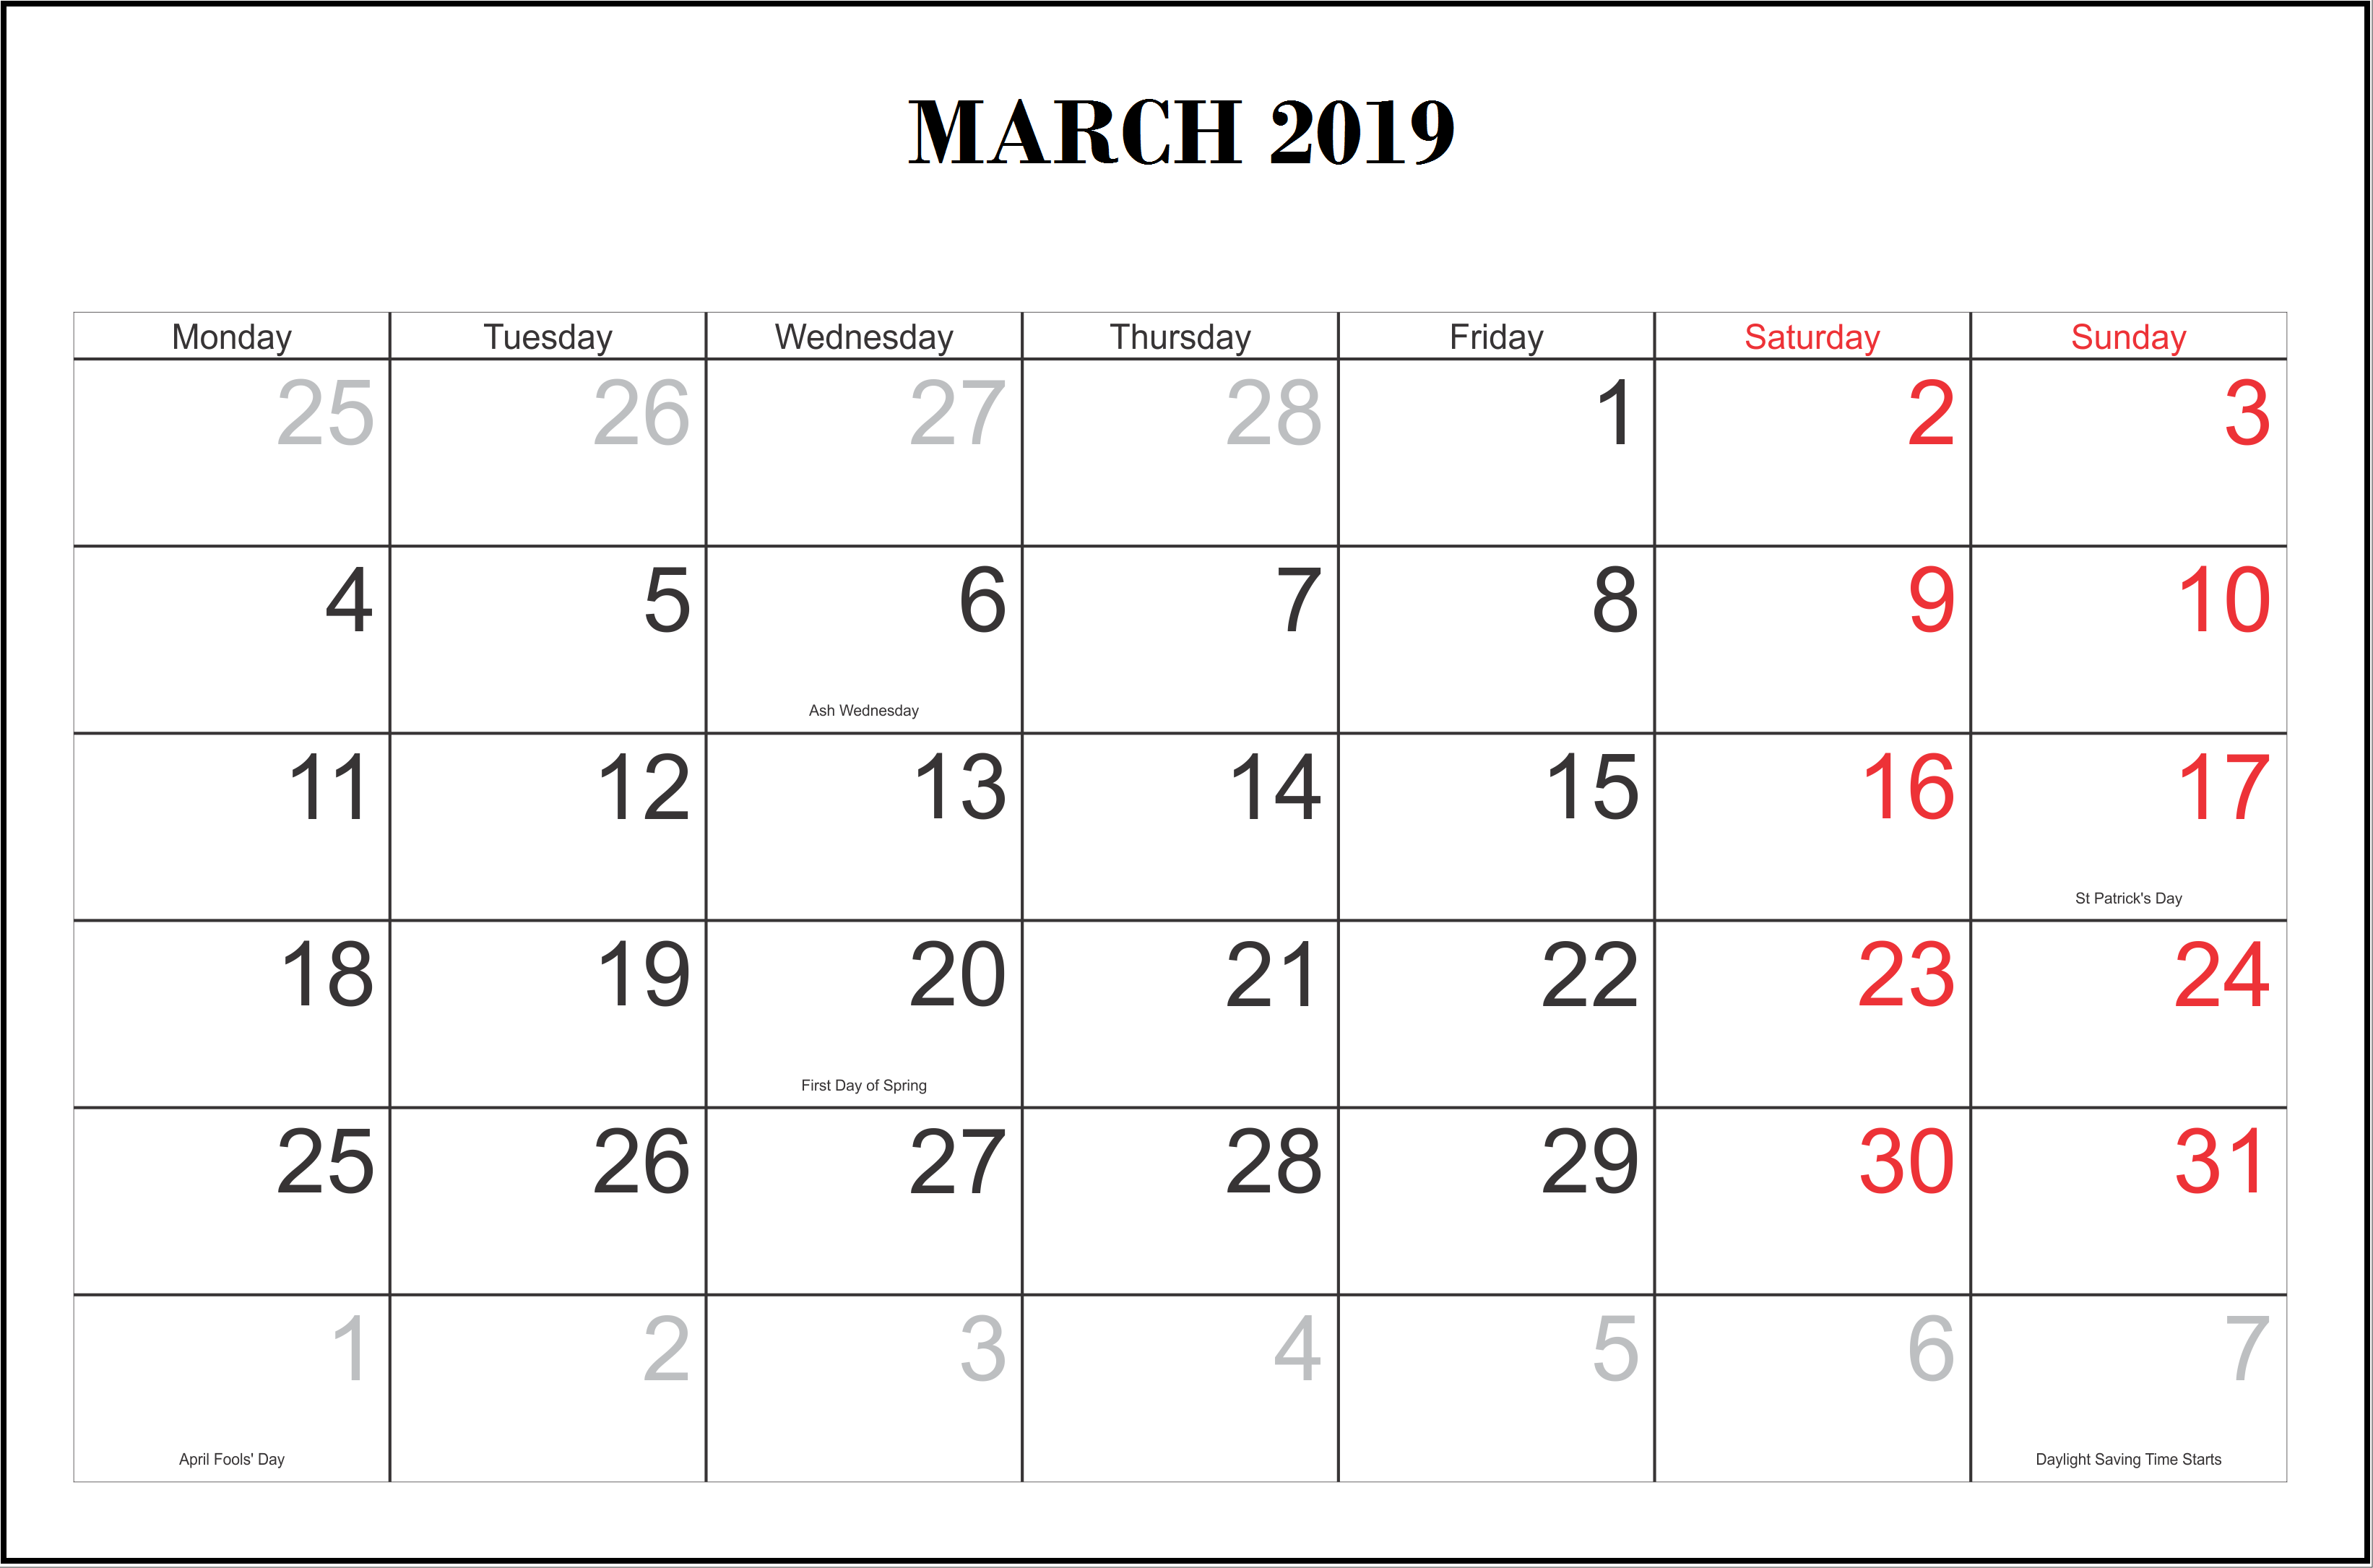 March 2019 USA Holidays Calendar